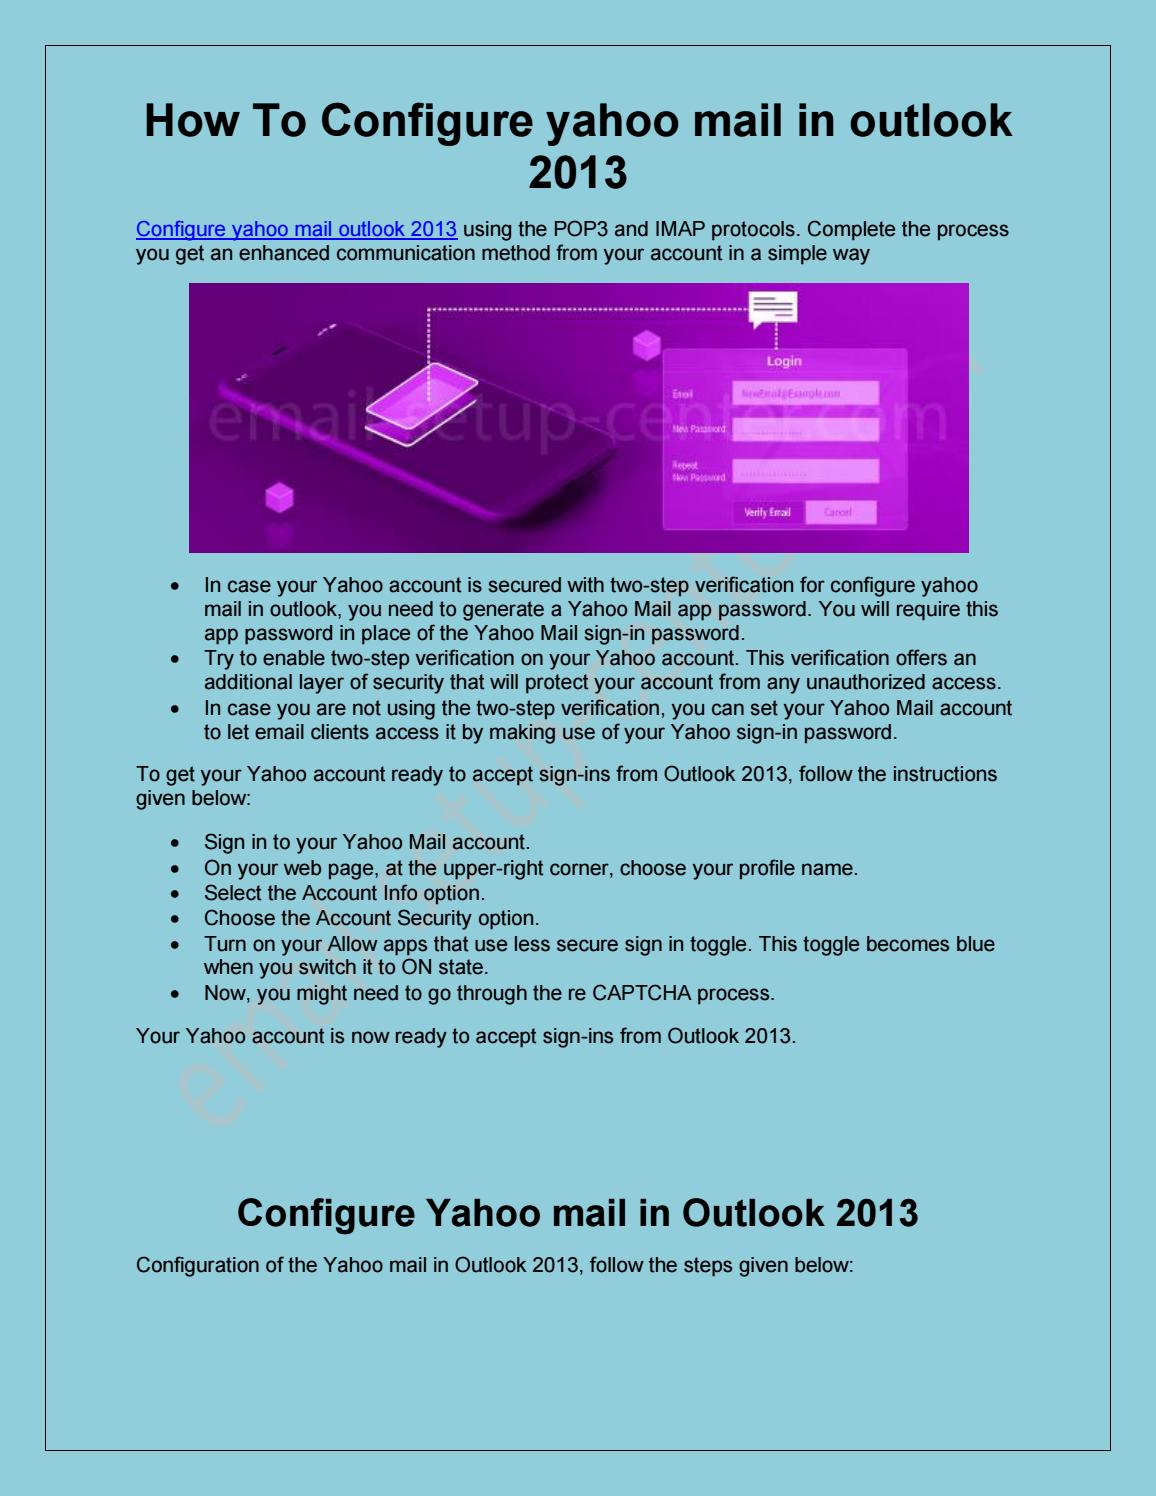 Configure Yahoo Mail In Outlook 2013 by James William - issuu